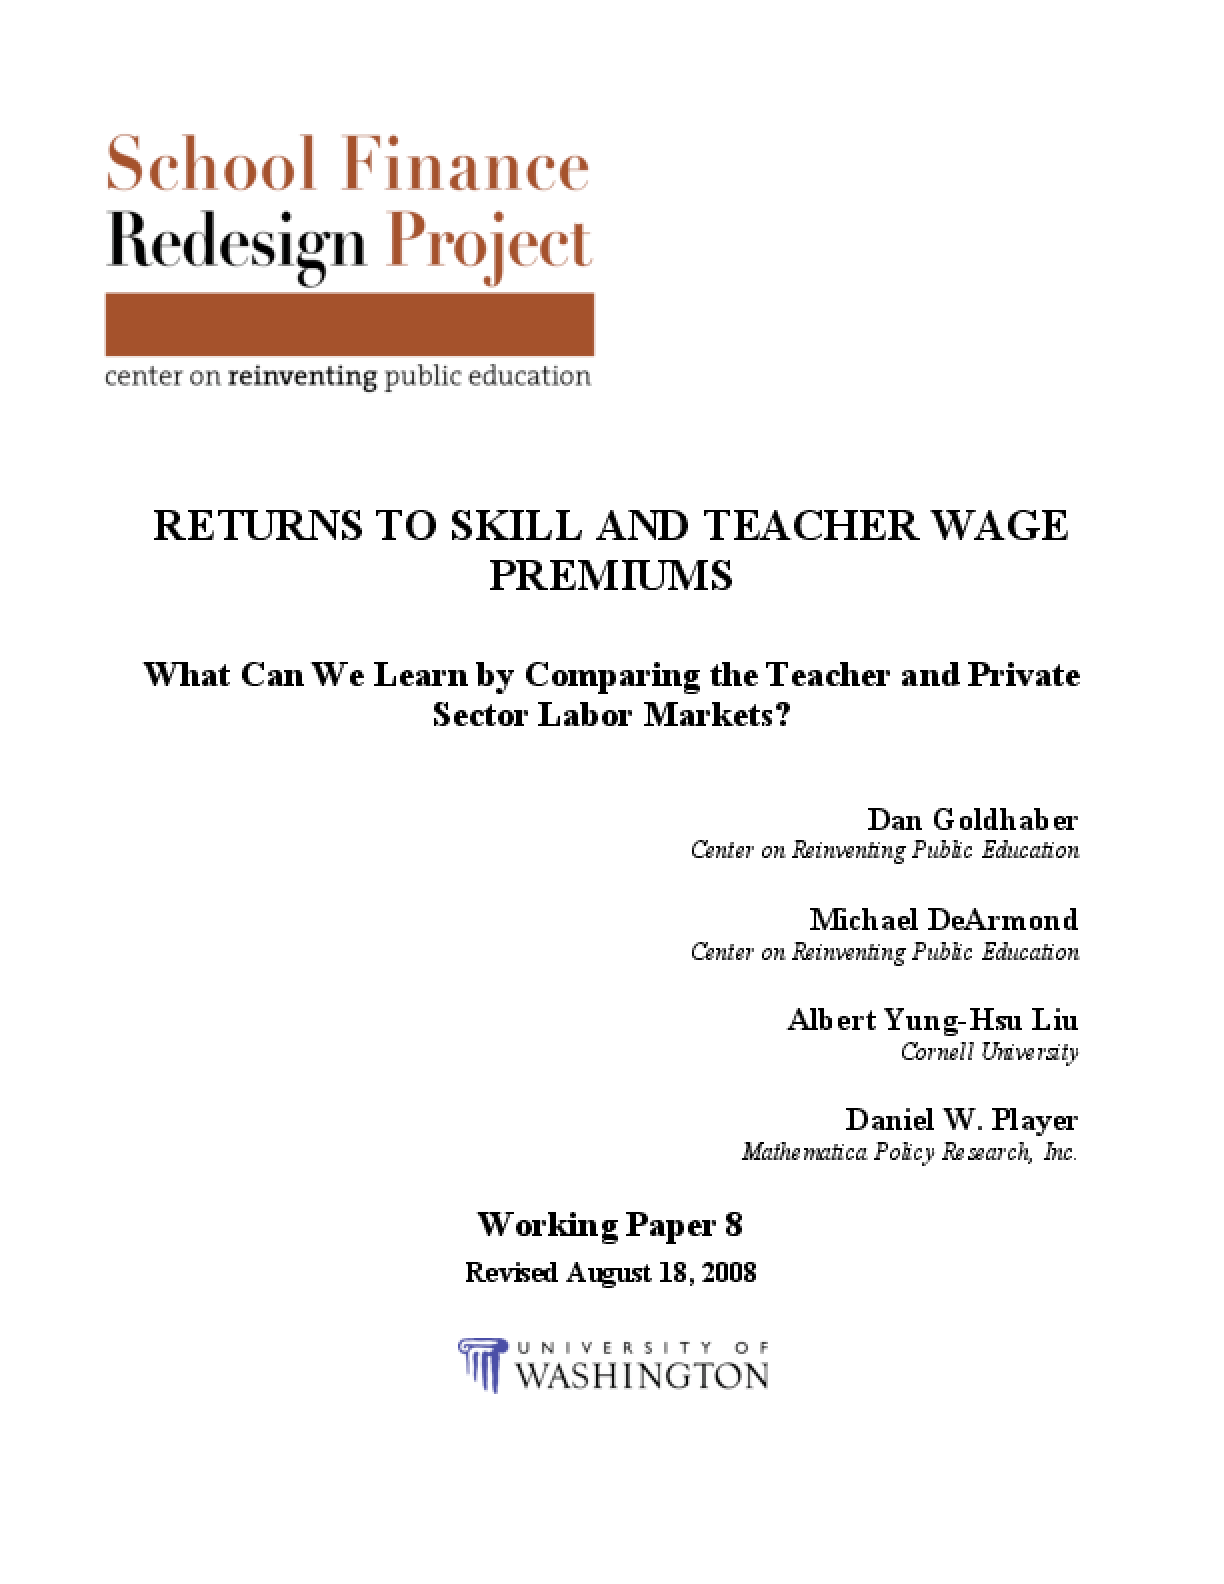 Returns to Skill and Teacher Wage Premiums: What Can We Learn By Comparing the Teacher and Private Sector Labor Markets?